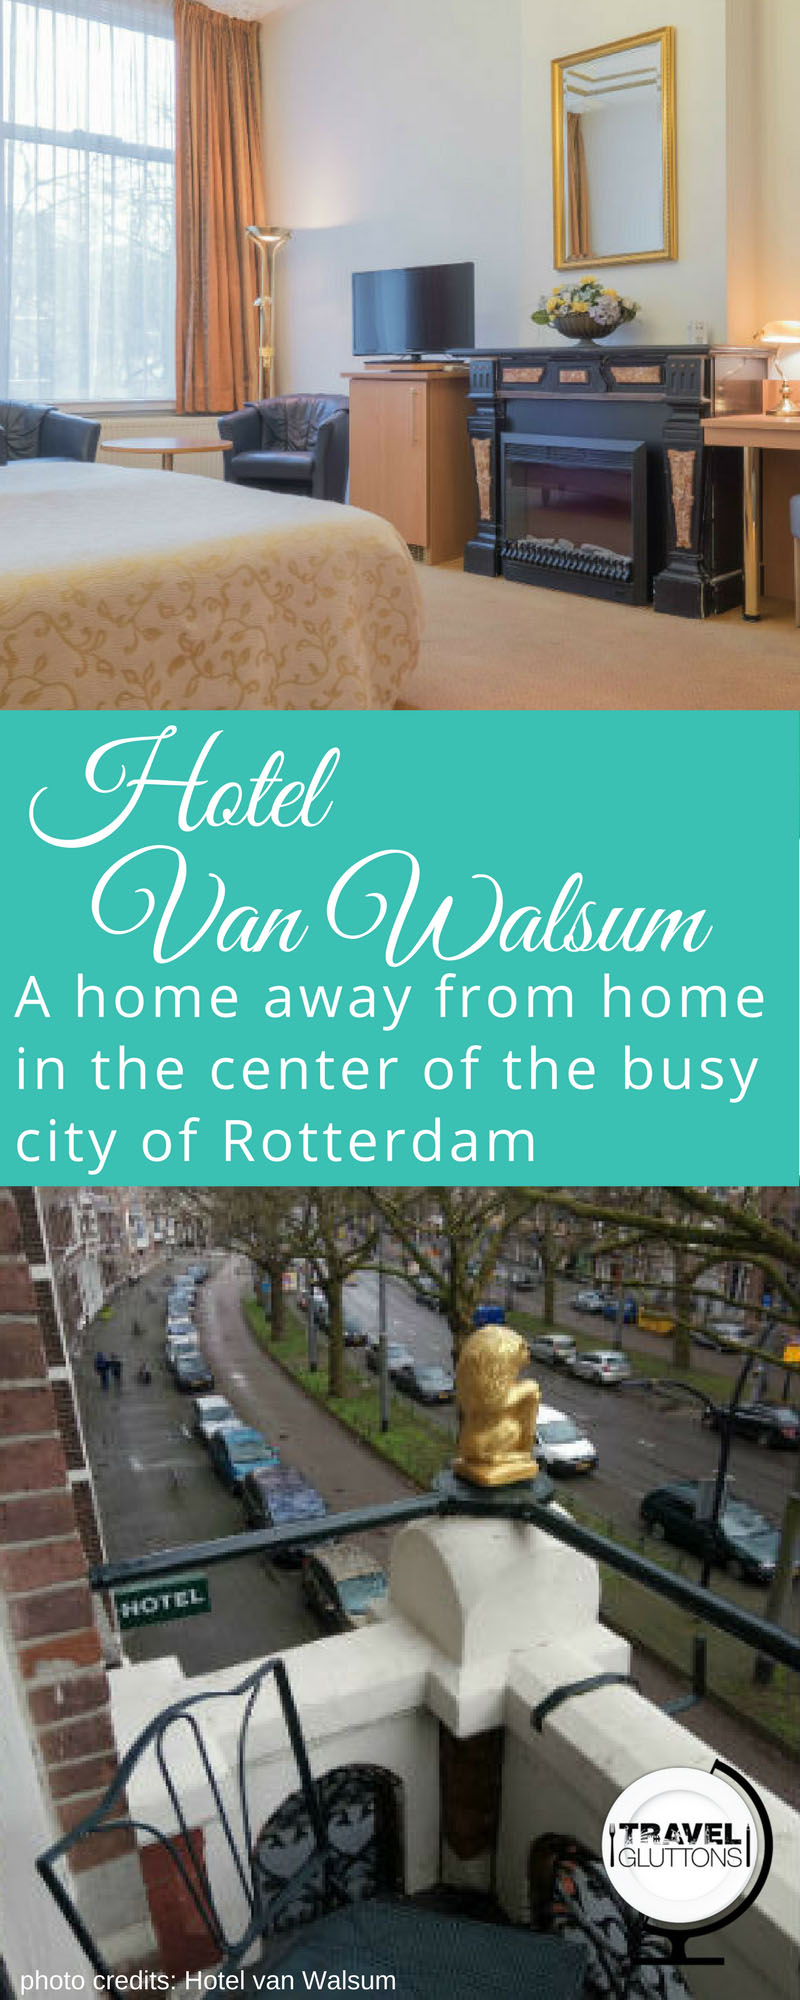 Hotel van Walsum's homey atmosphere, its location to the city centre, and the rich hotel history makes it definitely worth your stay!